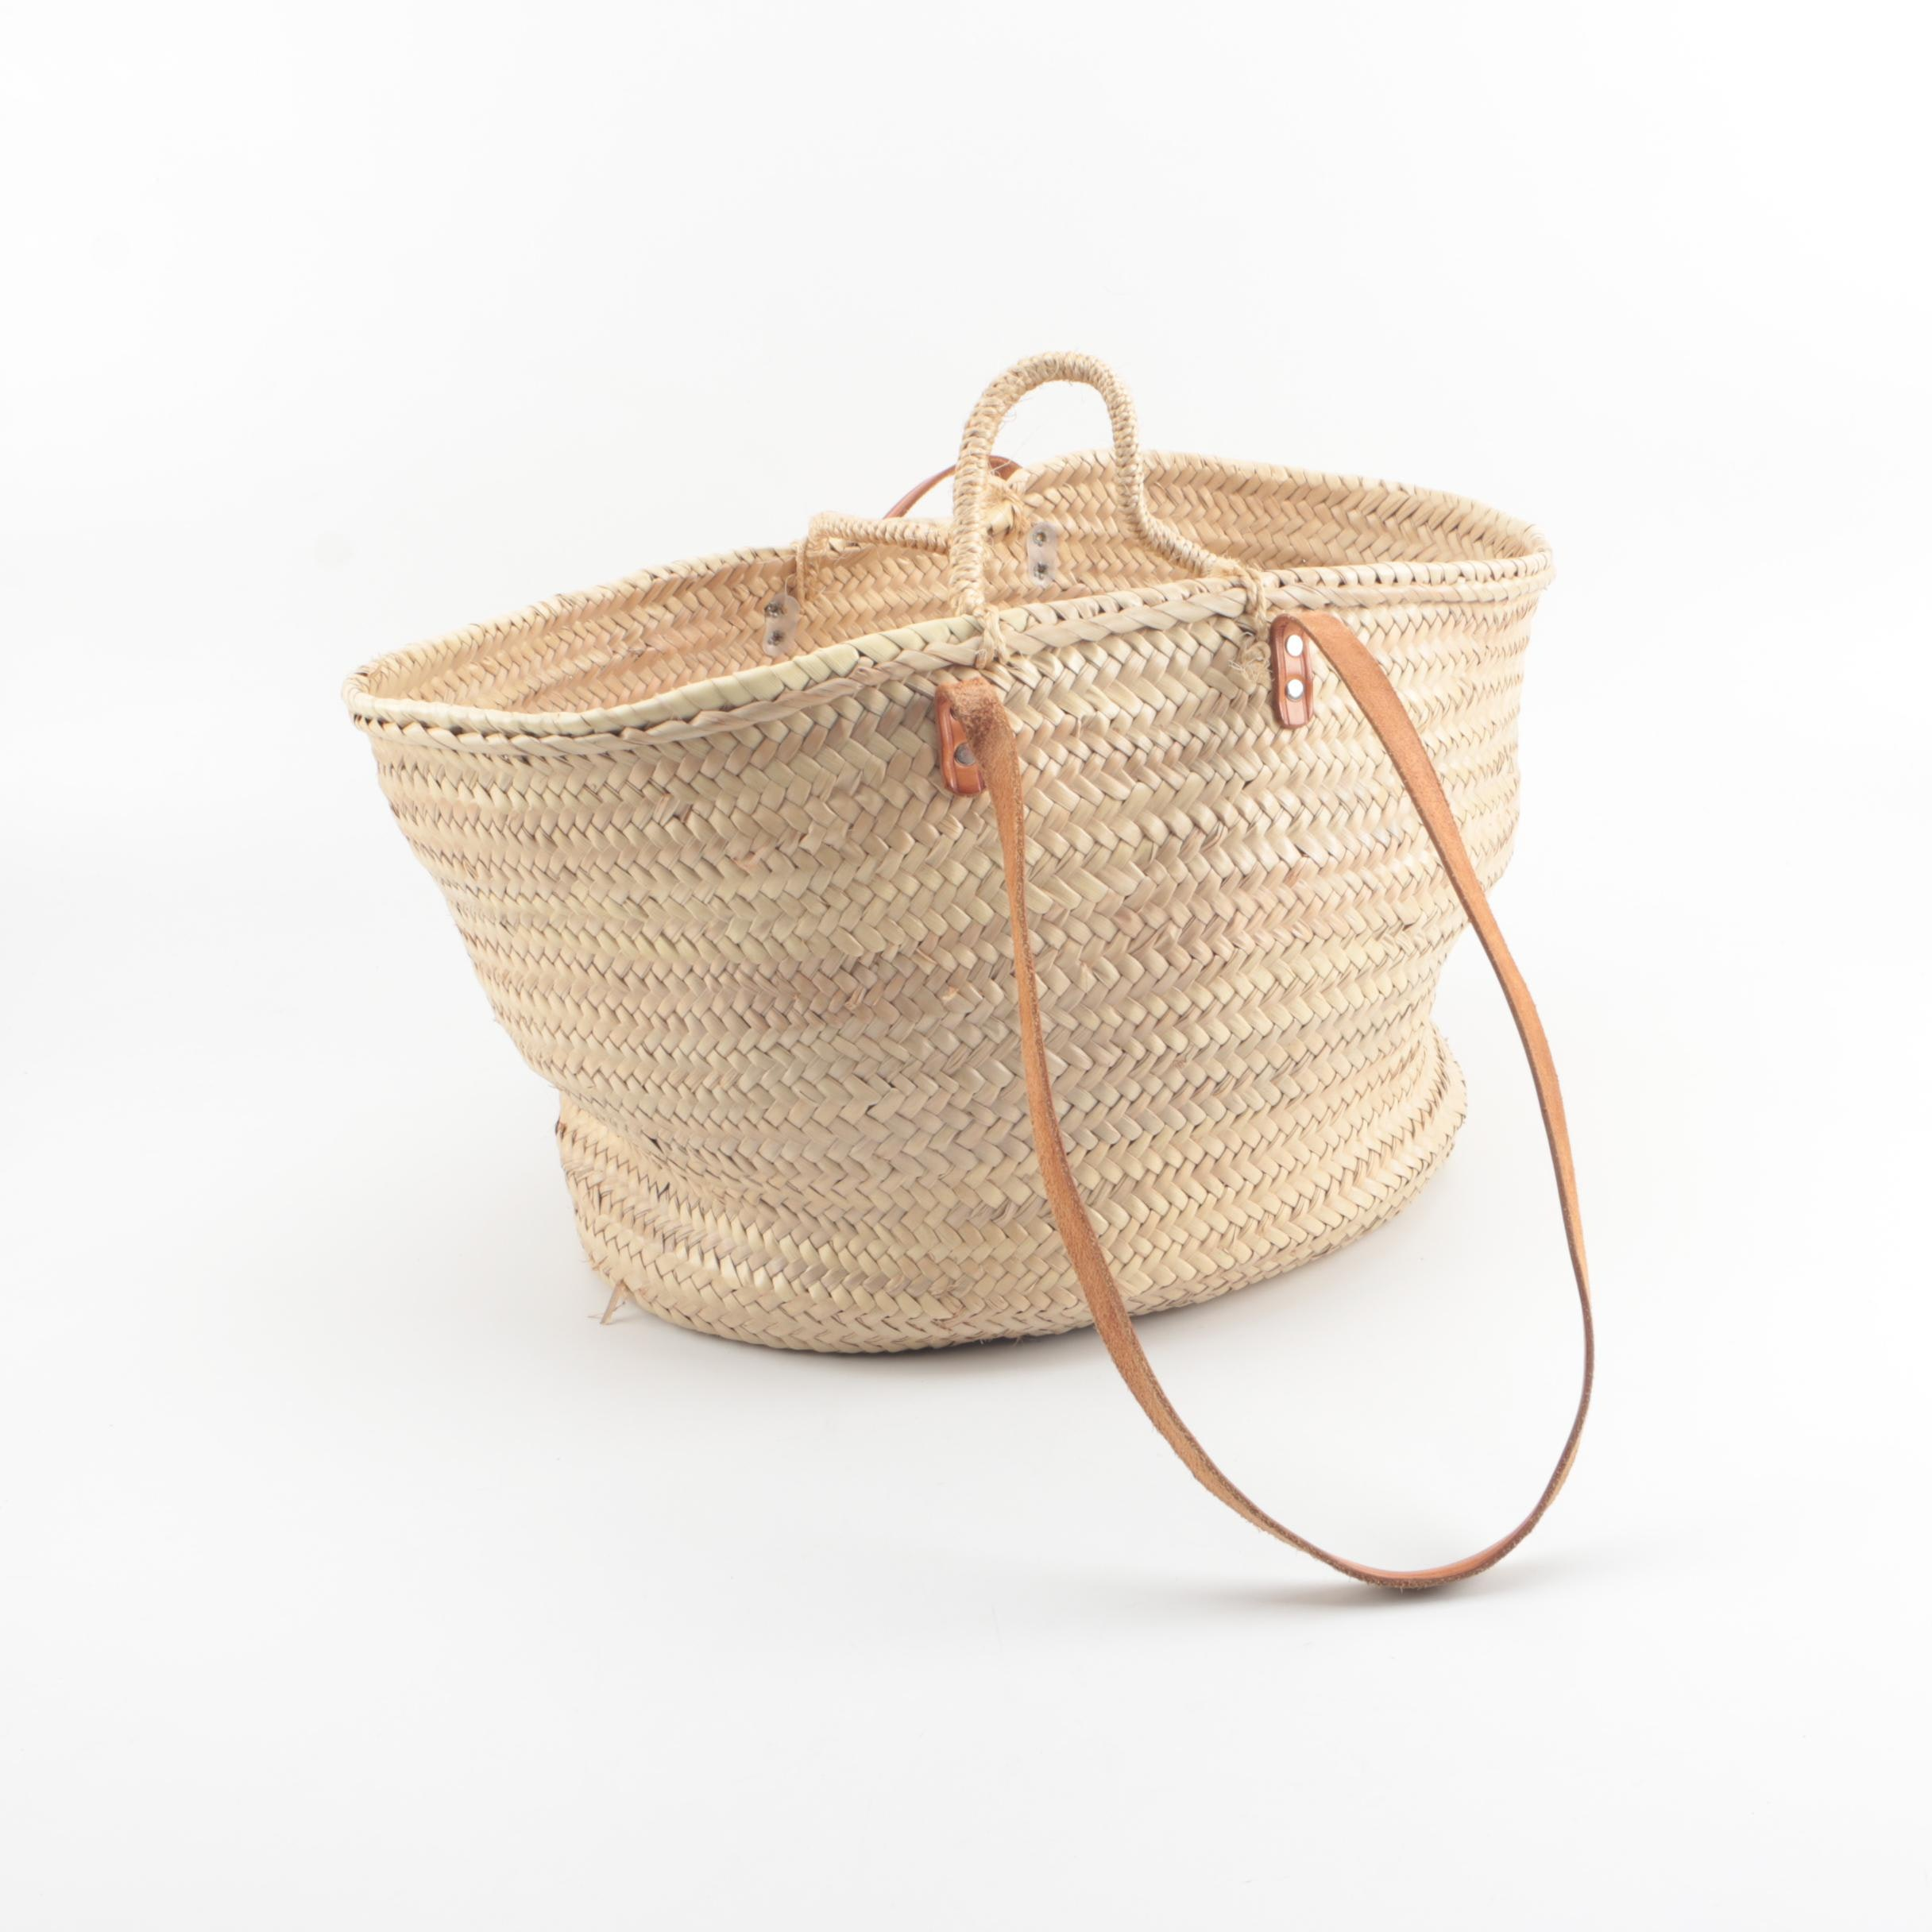 Wicker Market Woven Basket Tote with Tan Leather Shoulder Straps